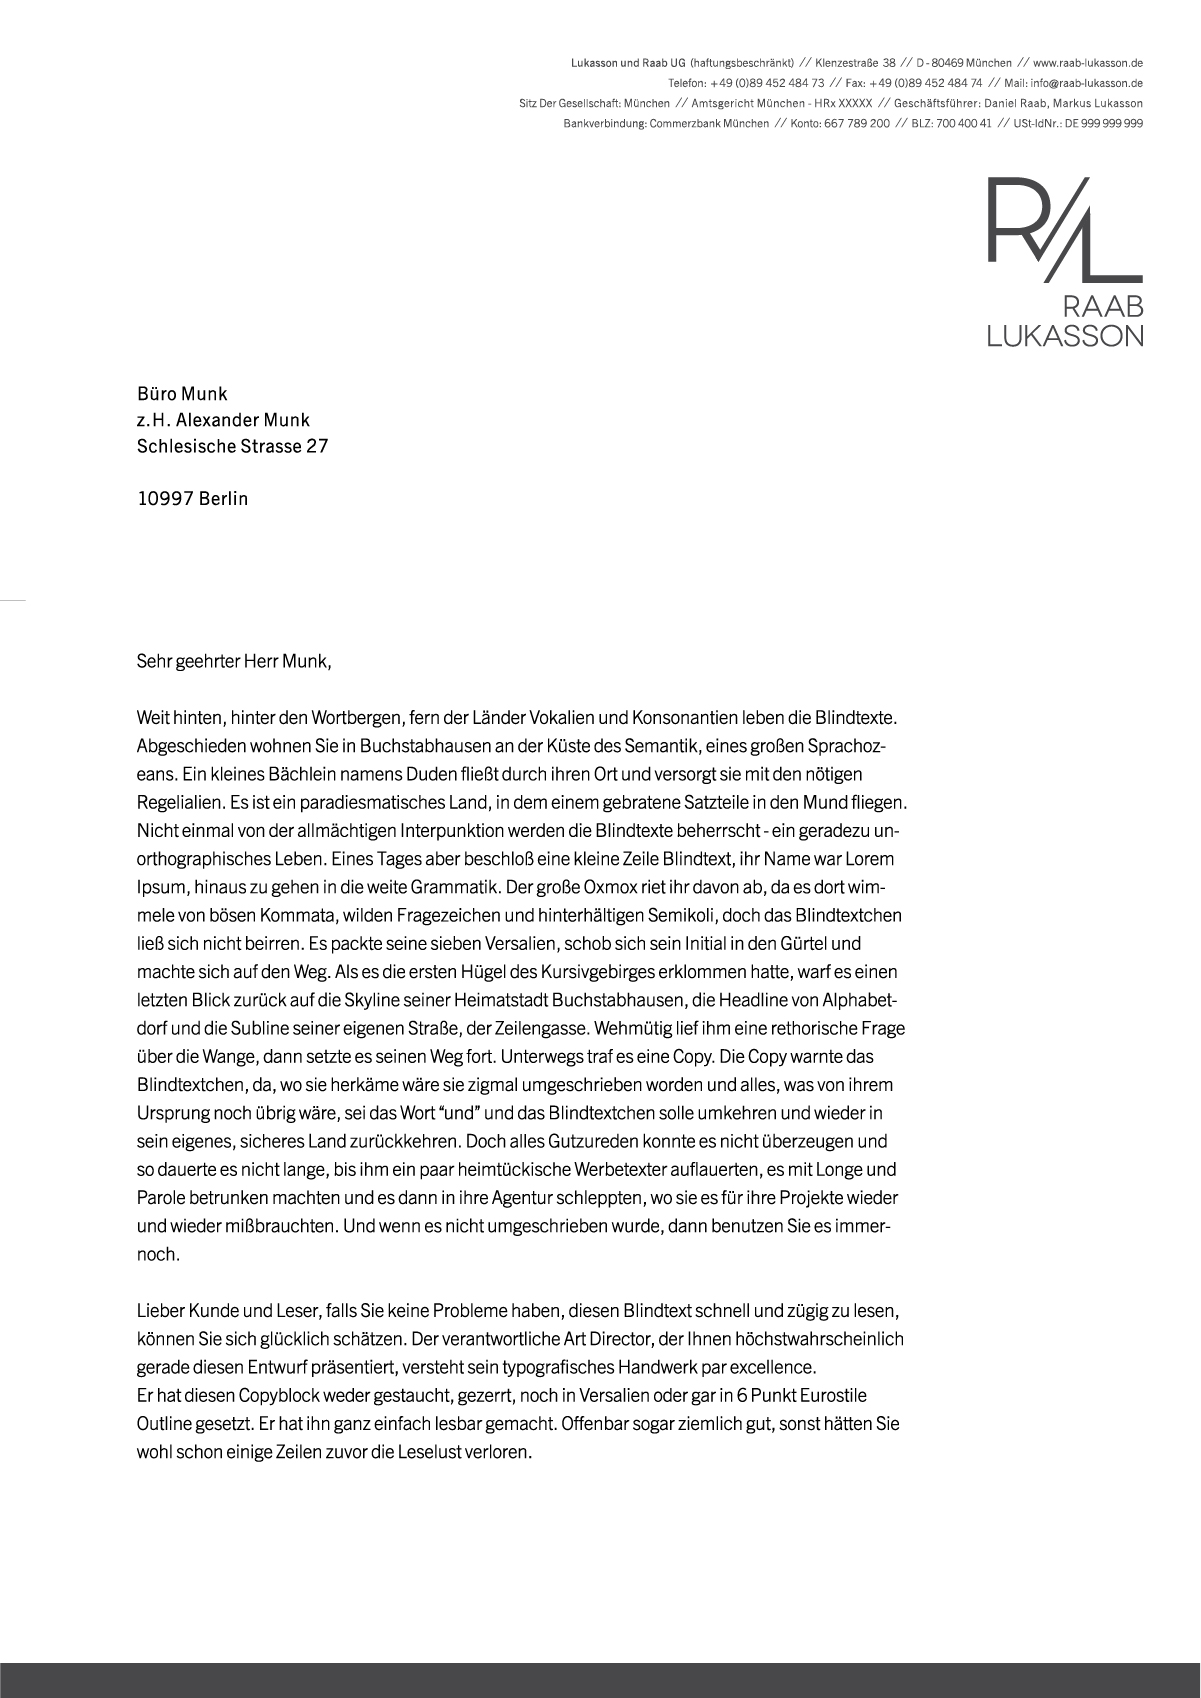 ML-letter-voll-01